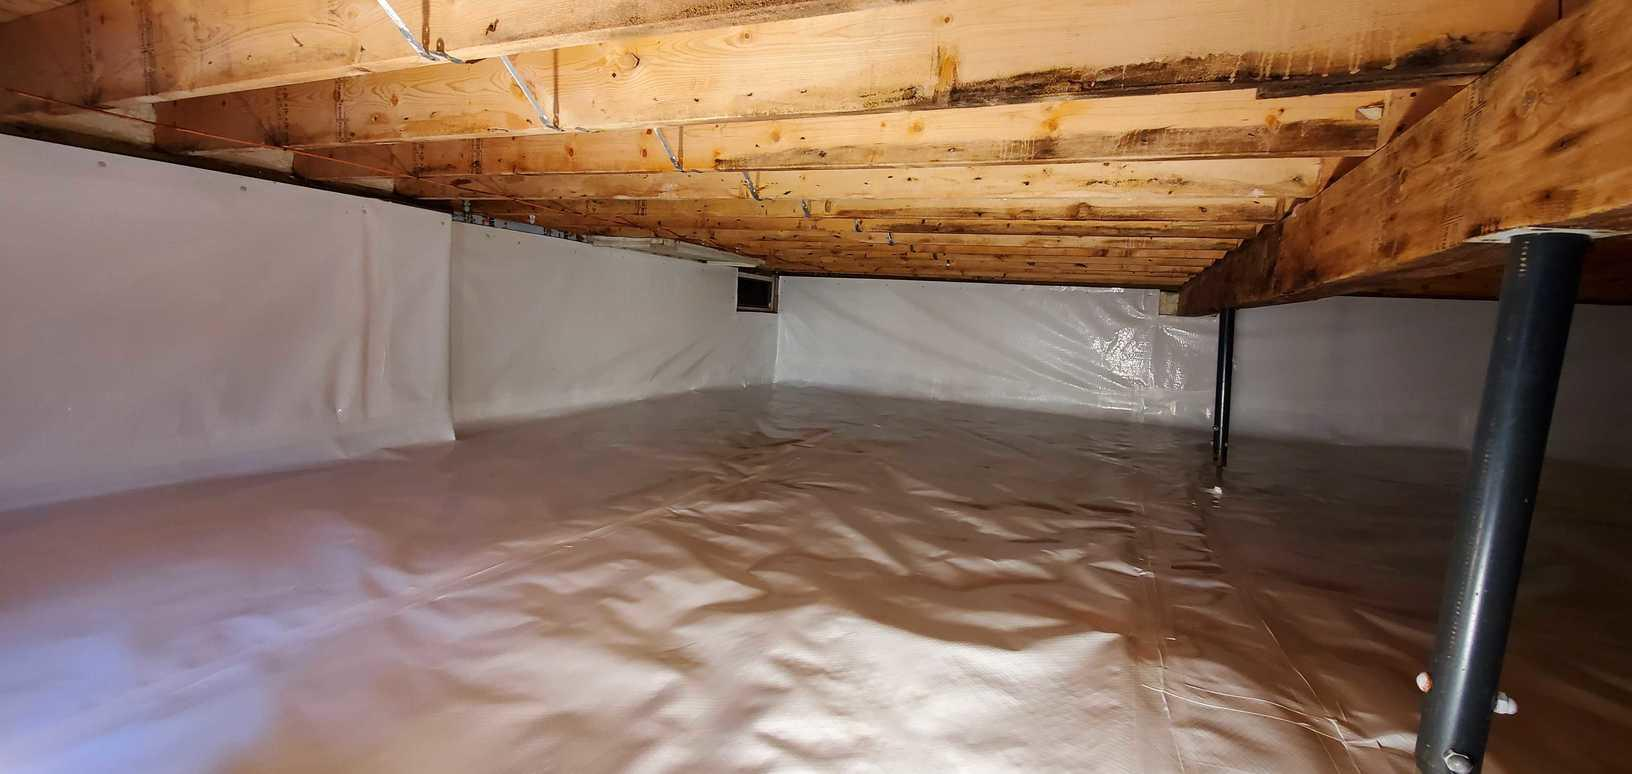 Crawl Space Encapsulation in Thornville, OH - After Photo